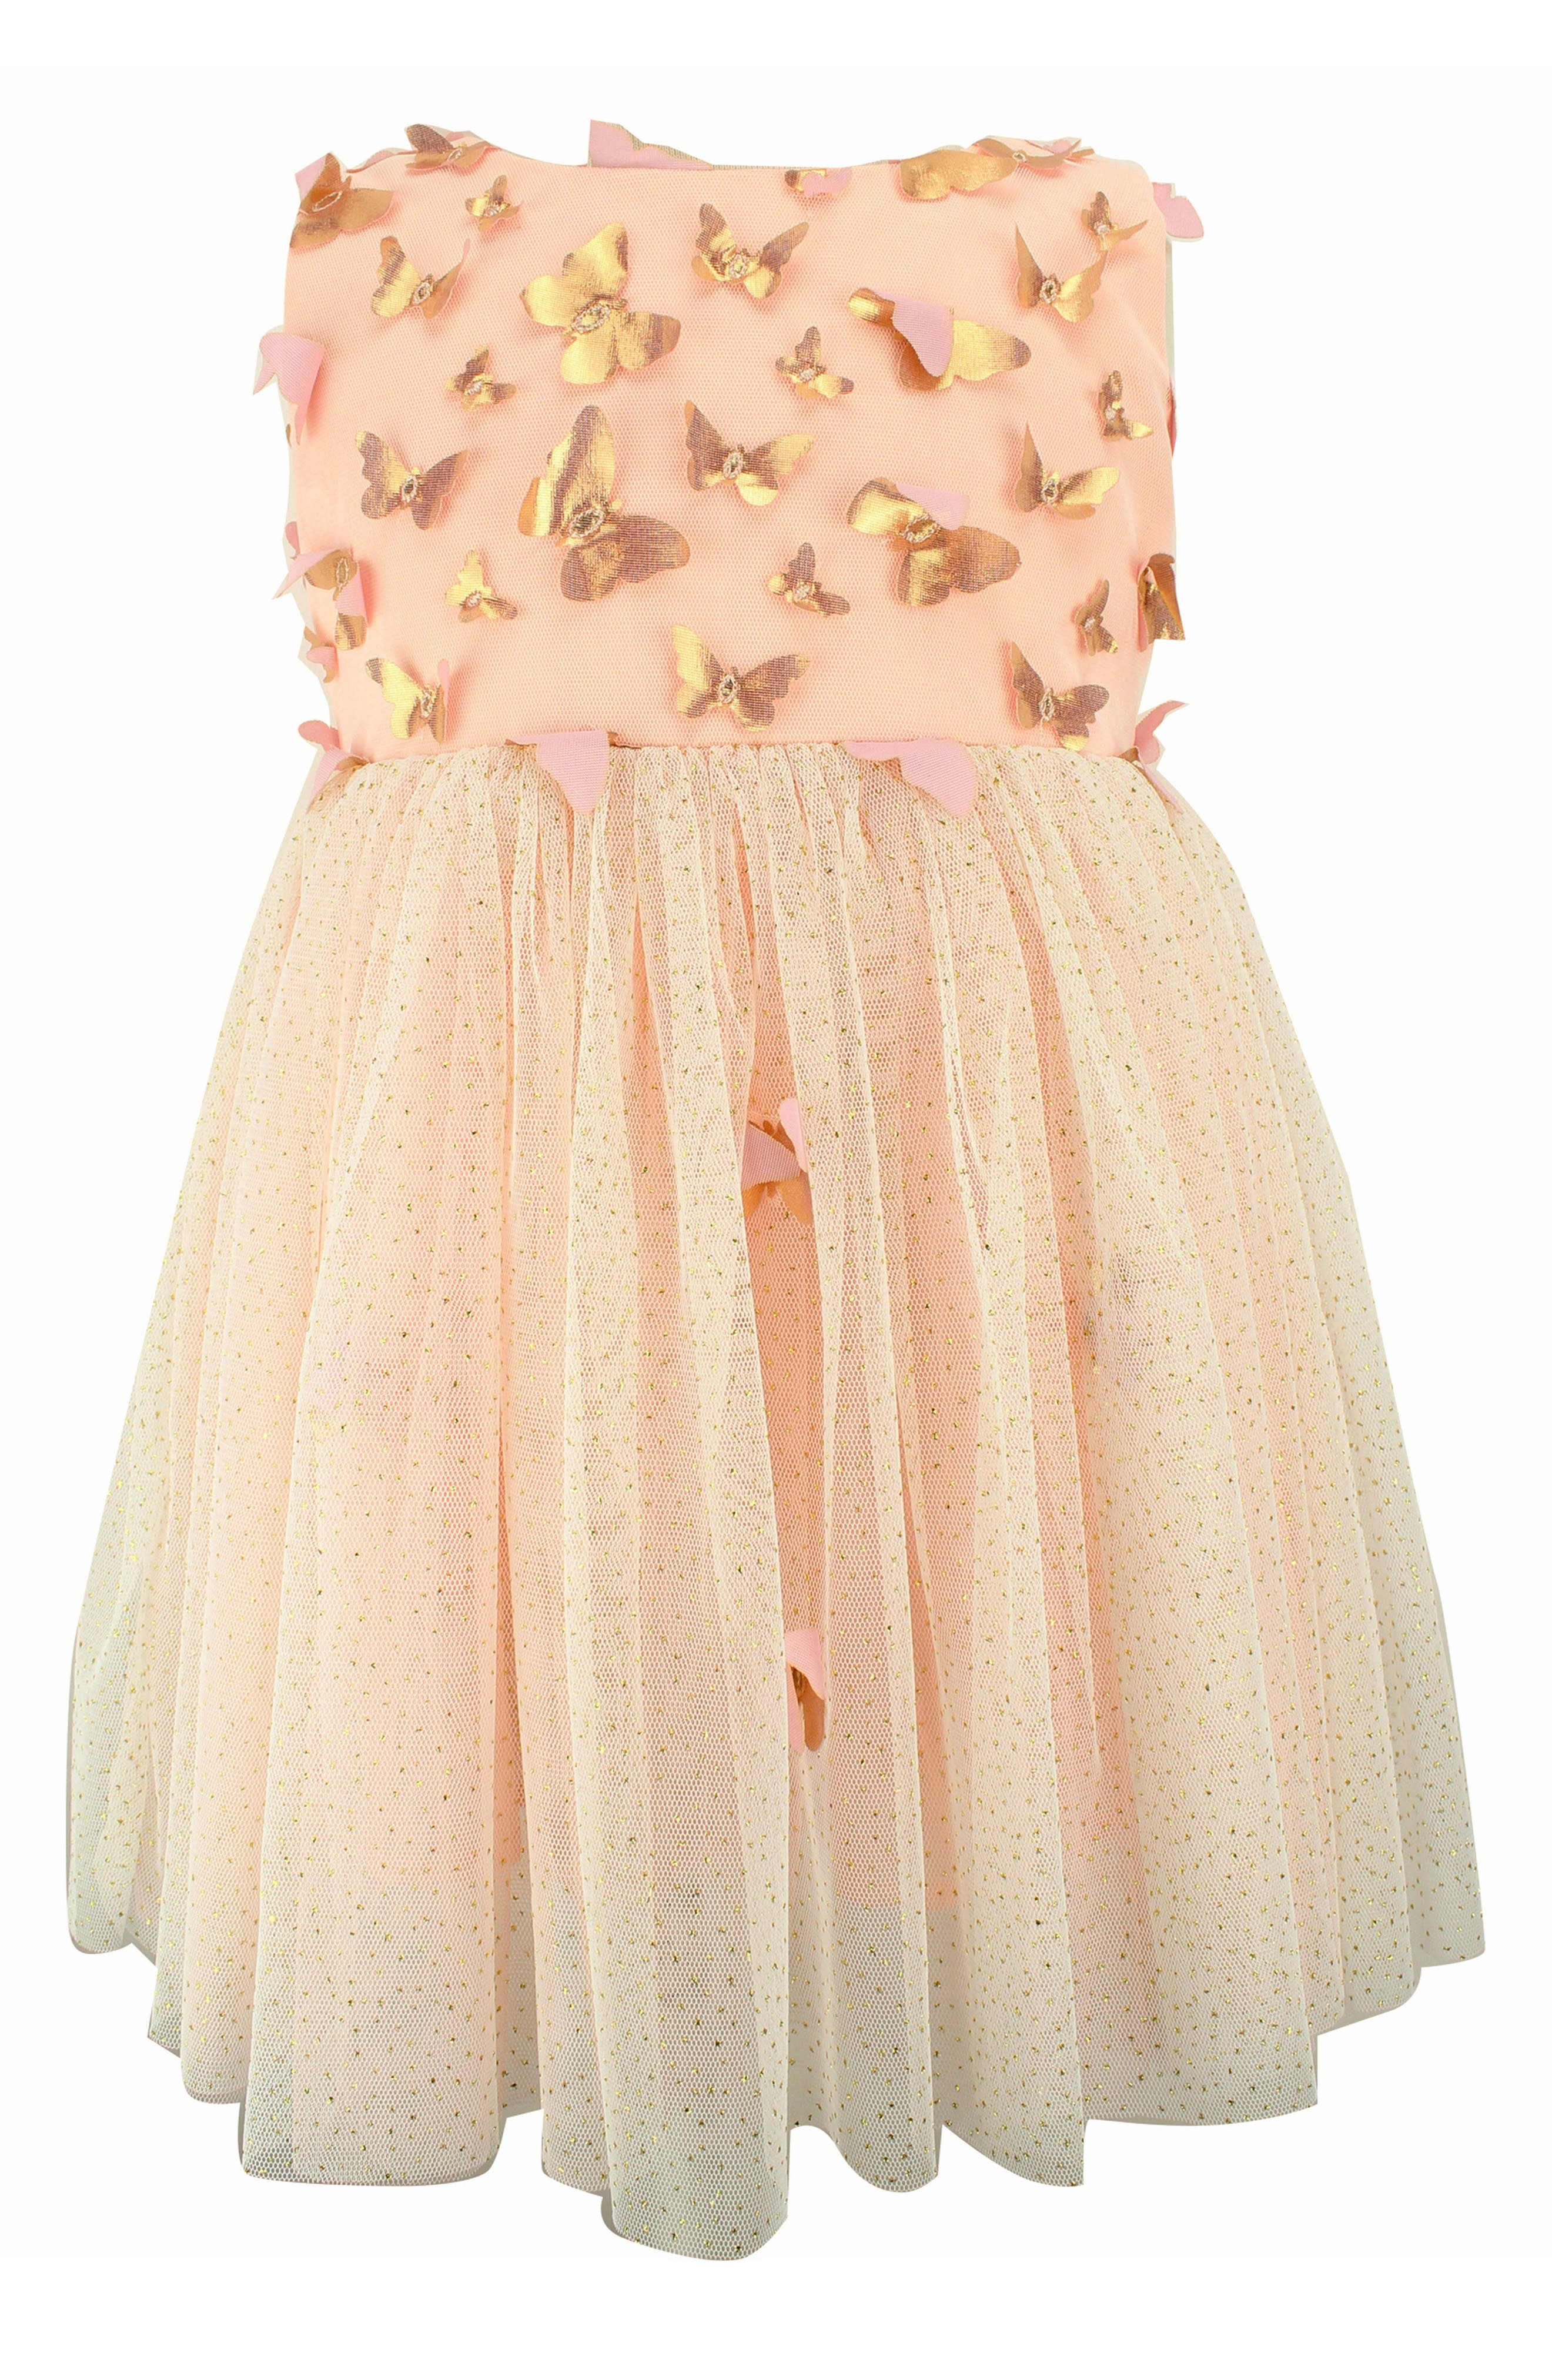 POPATU Butterfly Appliqué Tulle Dress, Main, color, DUSTY PINK